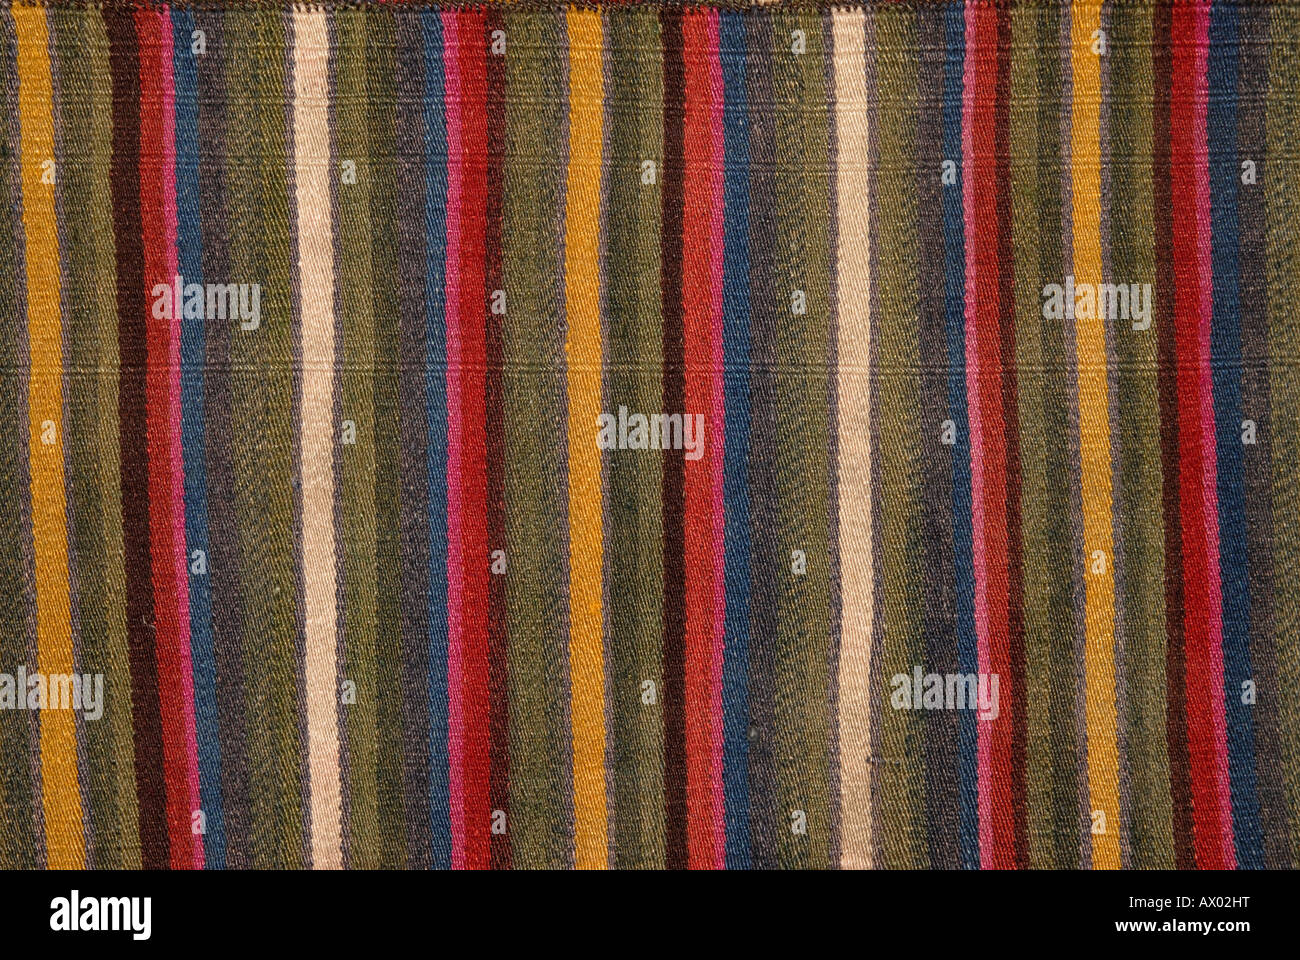 Detail of striped woollen fabric from Tibet. If Used in an editorial or scholarly context, please credit Collection: - Stock Image